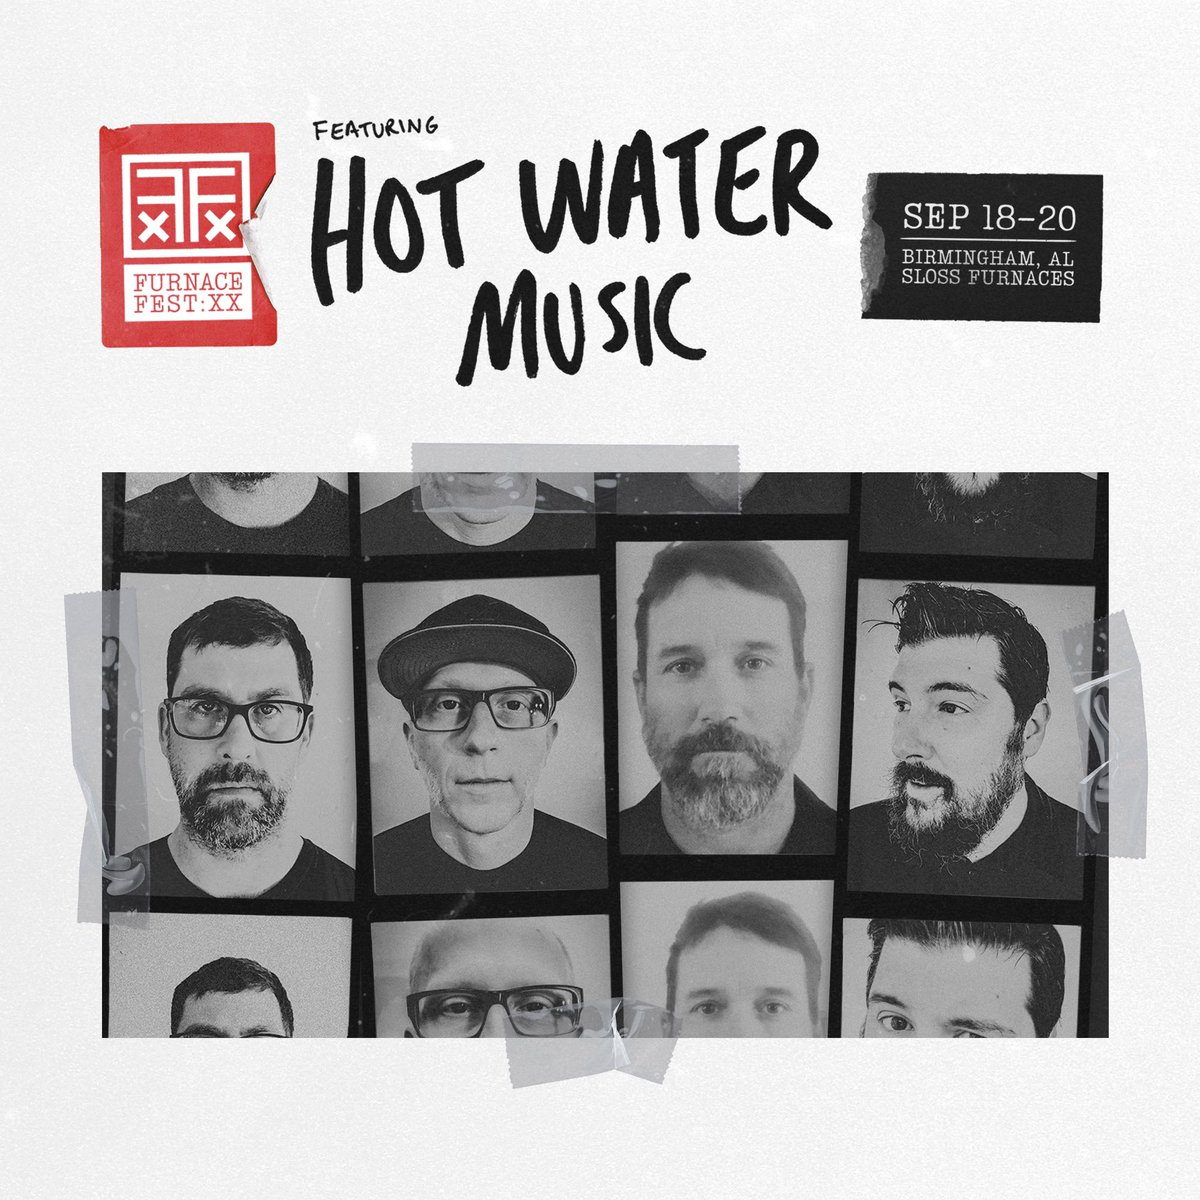 Welcome to the party @HotWaterMusic @knockedloose @bttroff @syscband